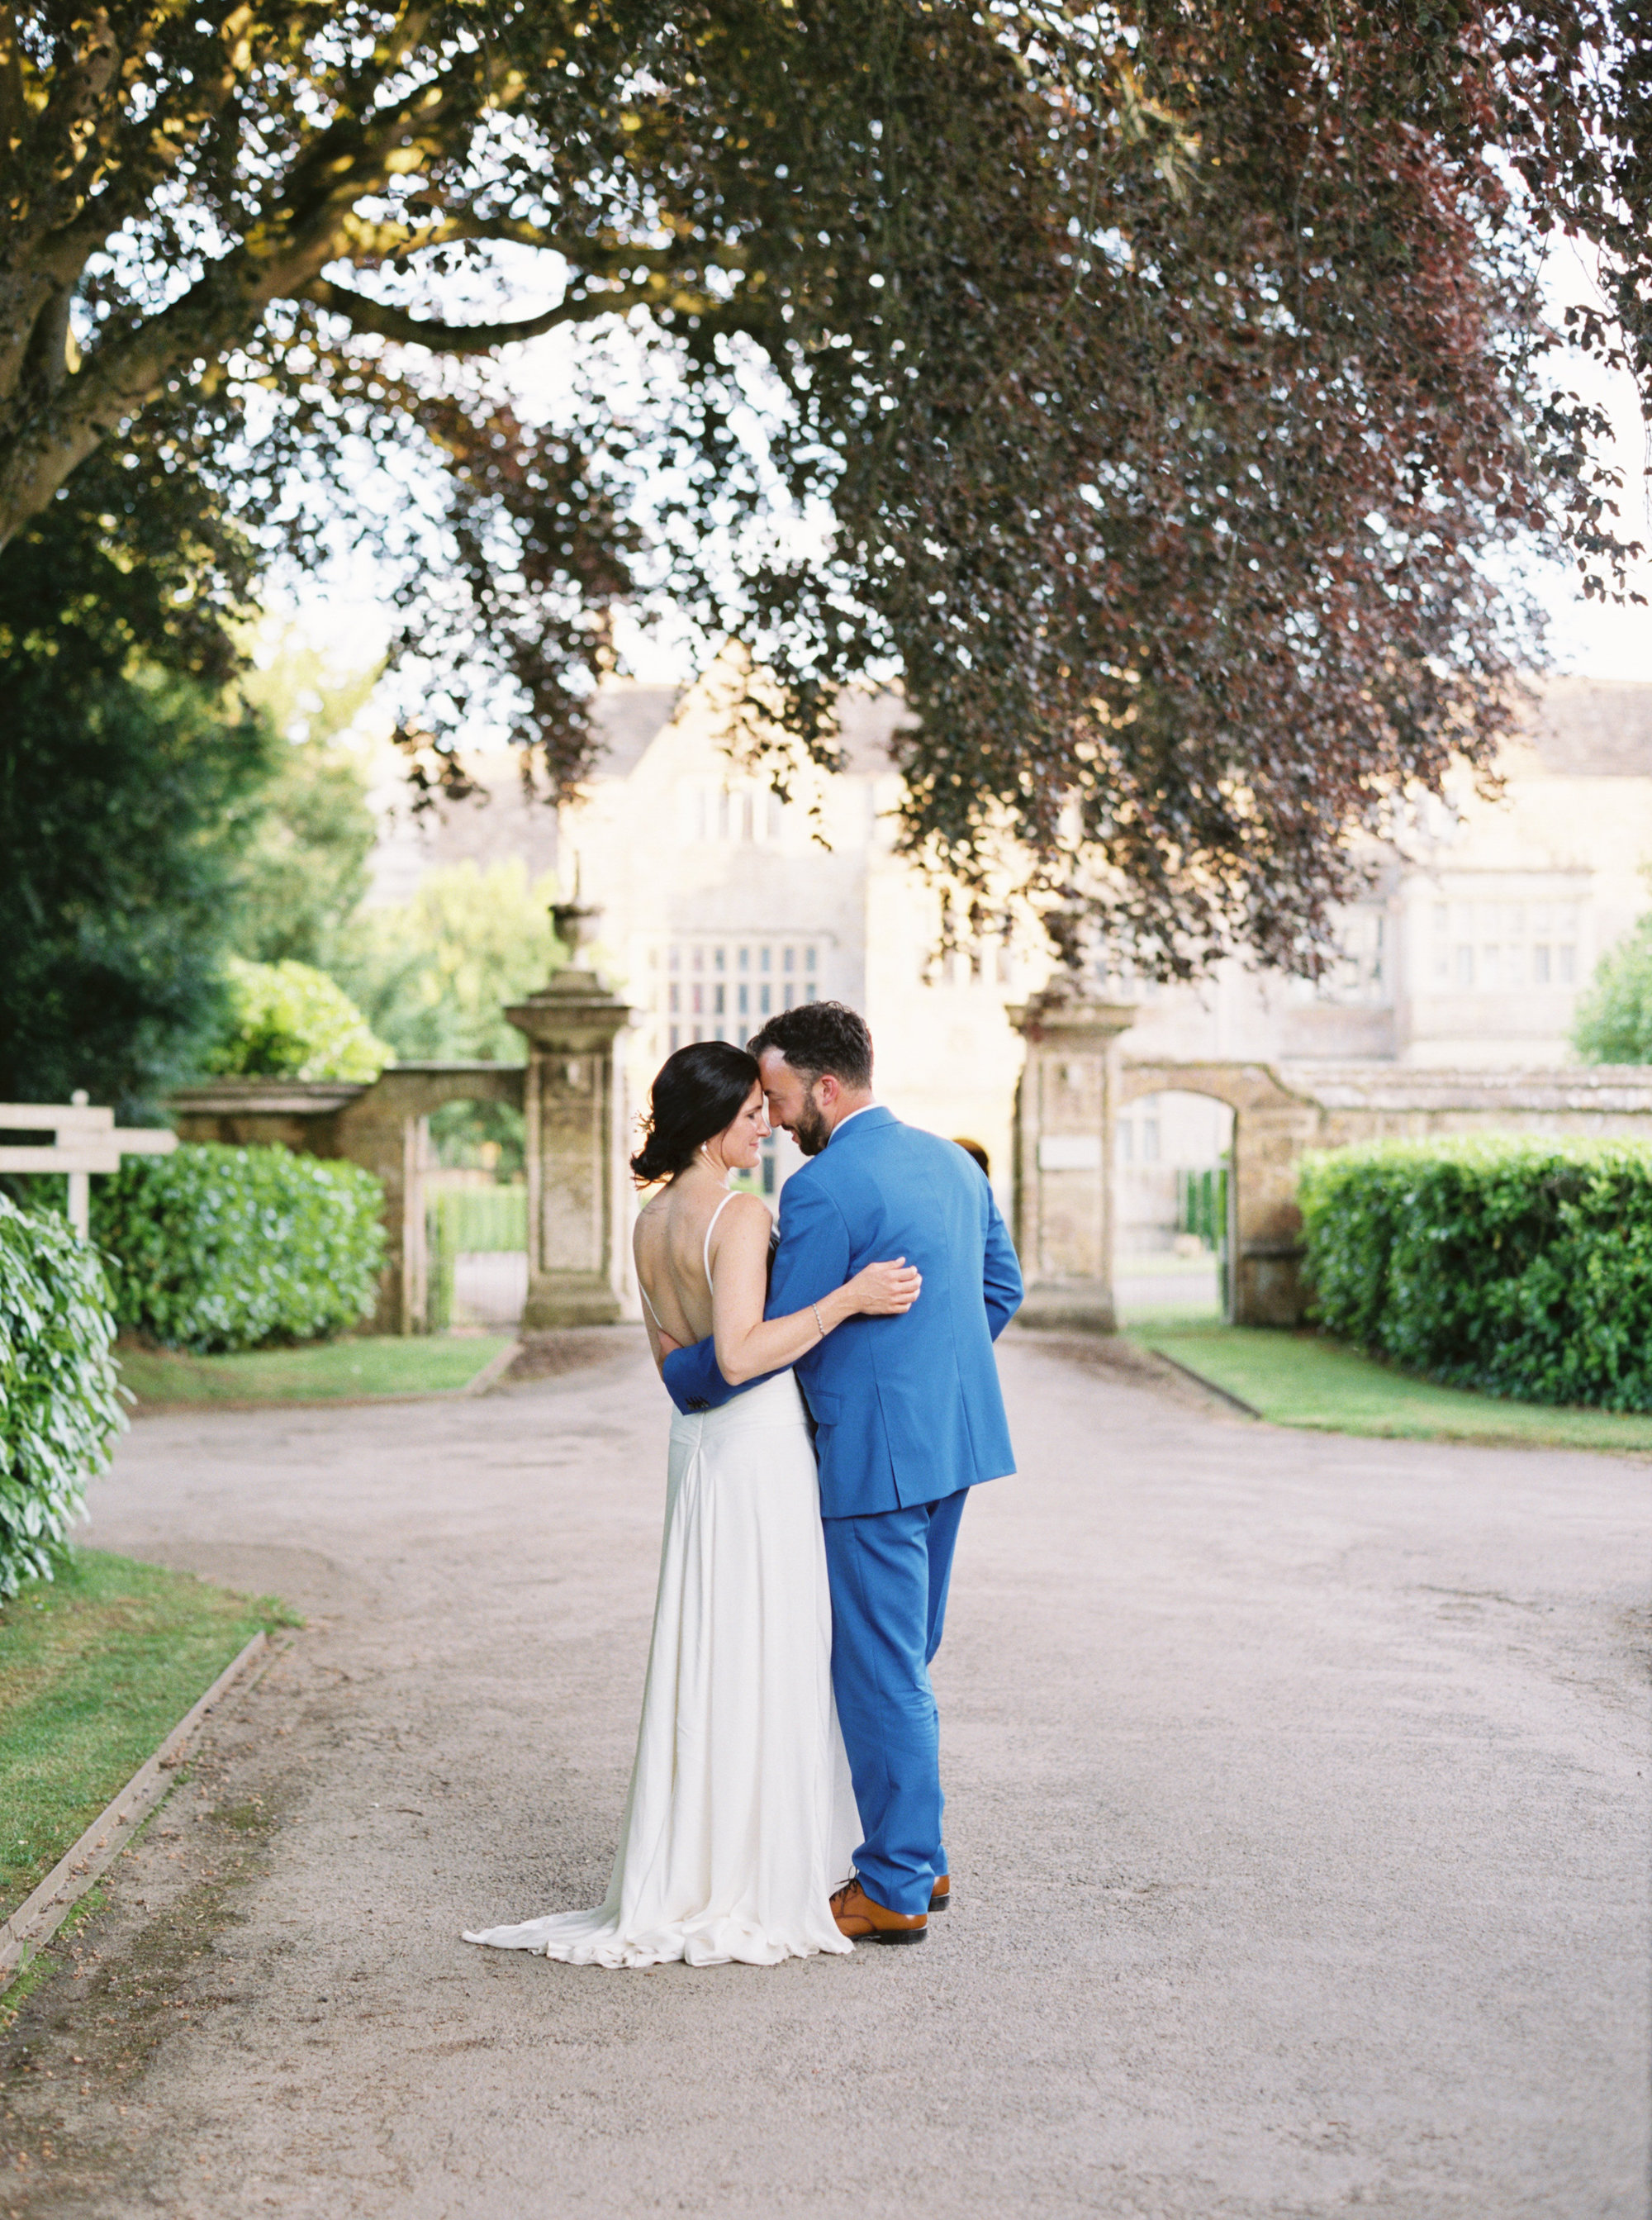 Luxury Wedding Planner UK | Jennifer & Timothy's English Country Manor Wedding | Soft Pink Pale Blue White and Silver Toned Green Neutral Tones American Bride North Cadbury Court | Nicole Colwell Photography  0092.jpg